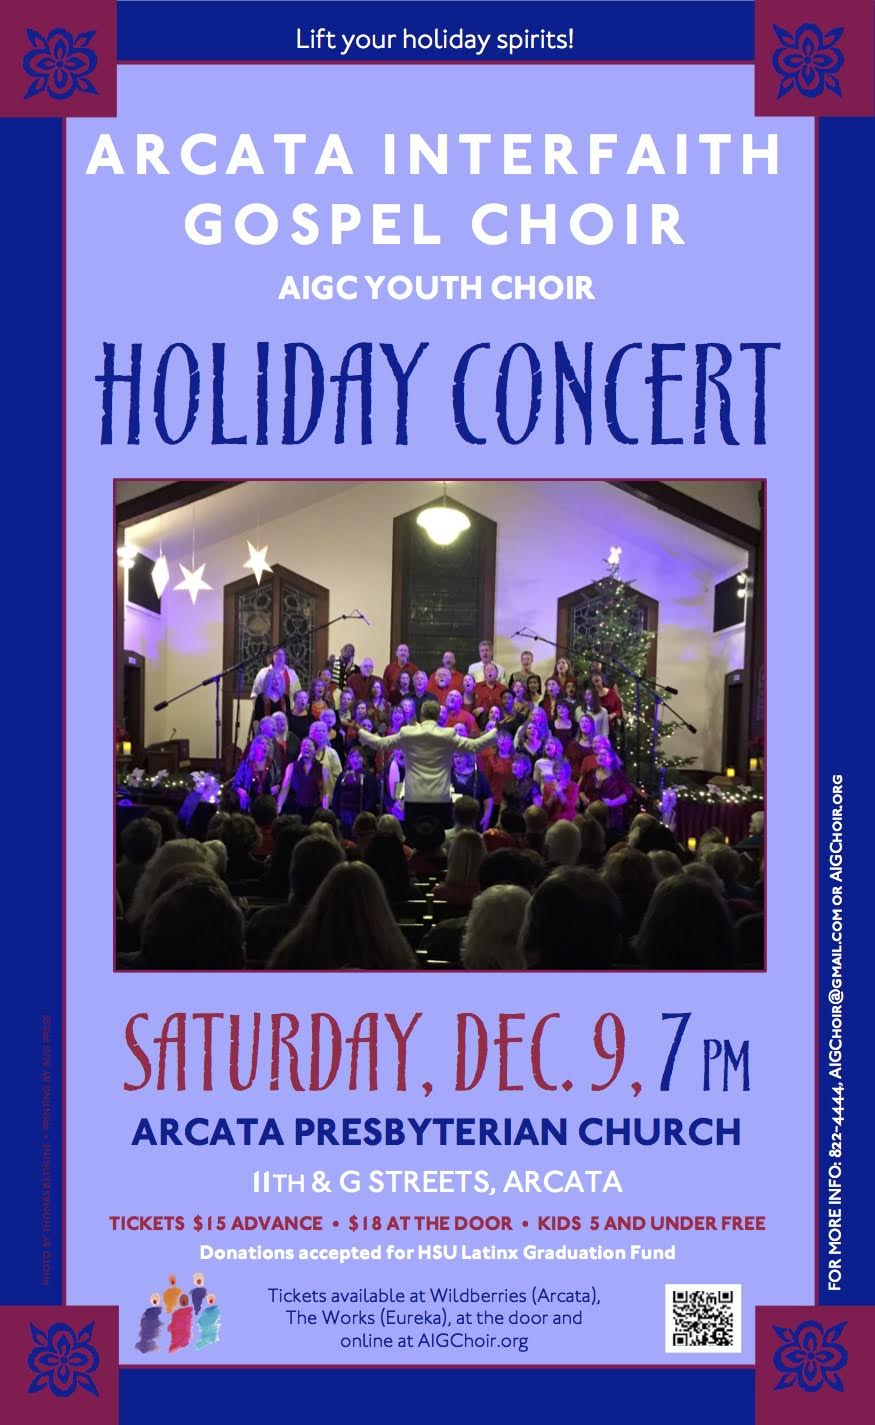 - You won't want to miss the Arcata Interfaith Gospel Choir and the AIGC Youth Choir performing their annual Holiday Concert, 7 p.m., Saturday, December 9, at the Arcata Presbyterian Church, 11th and G Streets.Buy Tickets NowThe Holiday Concert will feature a spirit-lifting selection of holiday gospel music.  In honor of our Latino brothers and sisters, AIGC will sing Las Posadas in Spanish.  Las Posadas is a traditional Mexican Christmas song cycle which tells the story of Mary and Joseph searching for lodging.Tickets are $15 in advance and $18 at the door.  Buy your tickets online and save! Tickets are also available at Wildberries Marketplace (747 13th St, Arcata) and The Works (434 2nd St, Eureka). Children 5 and under enter for free.The Holiday Concert will be the first concert performed in the Arcata Presbyterian Church since being restored after the devastating arson-set fire of September 16, 2017. Funds for the Humboldt State University, Latinx graduation will be requested at the event.  Latino students will make up more than half of the HSU graduating class of 2018.Share our Facebook Event.